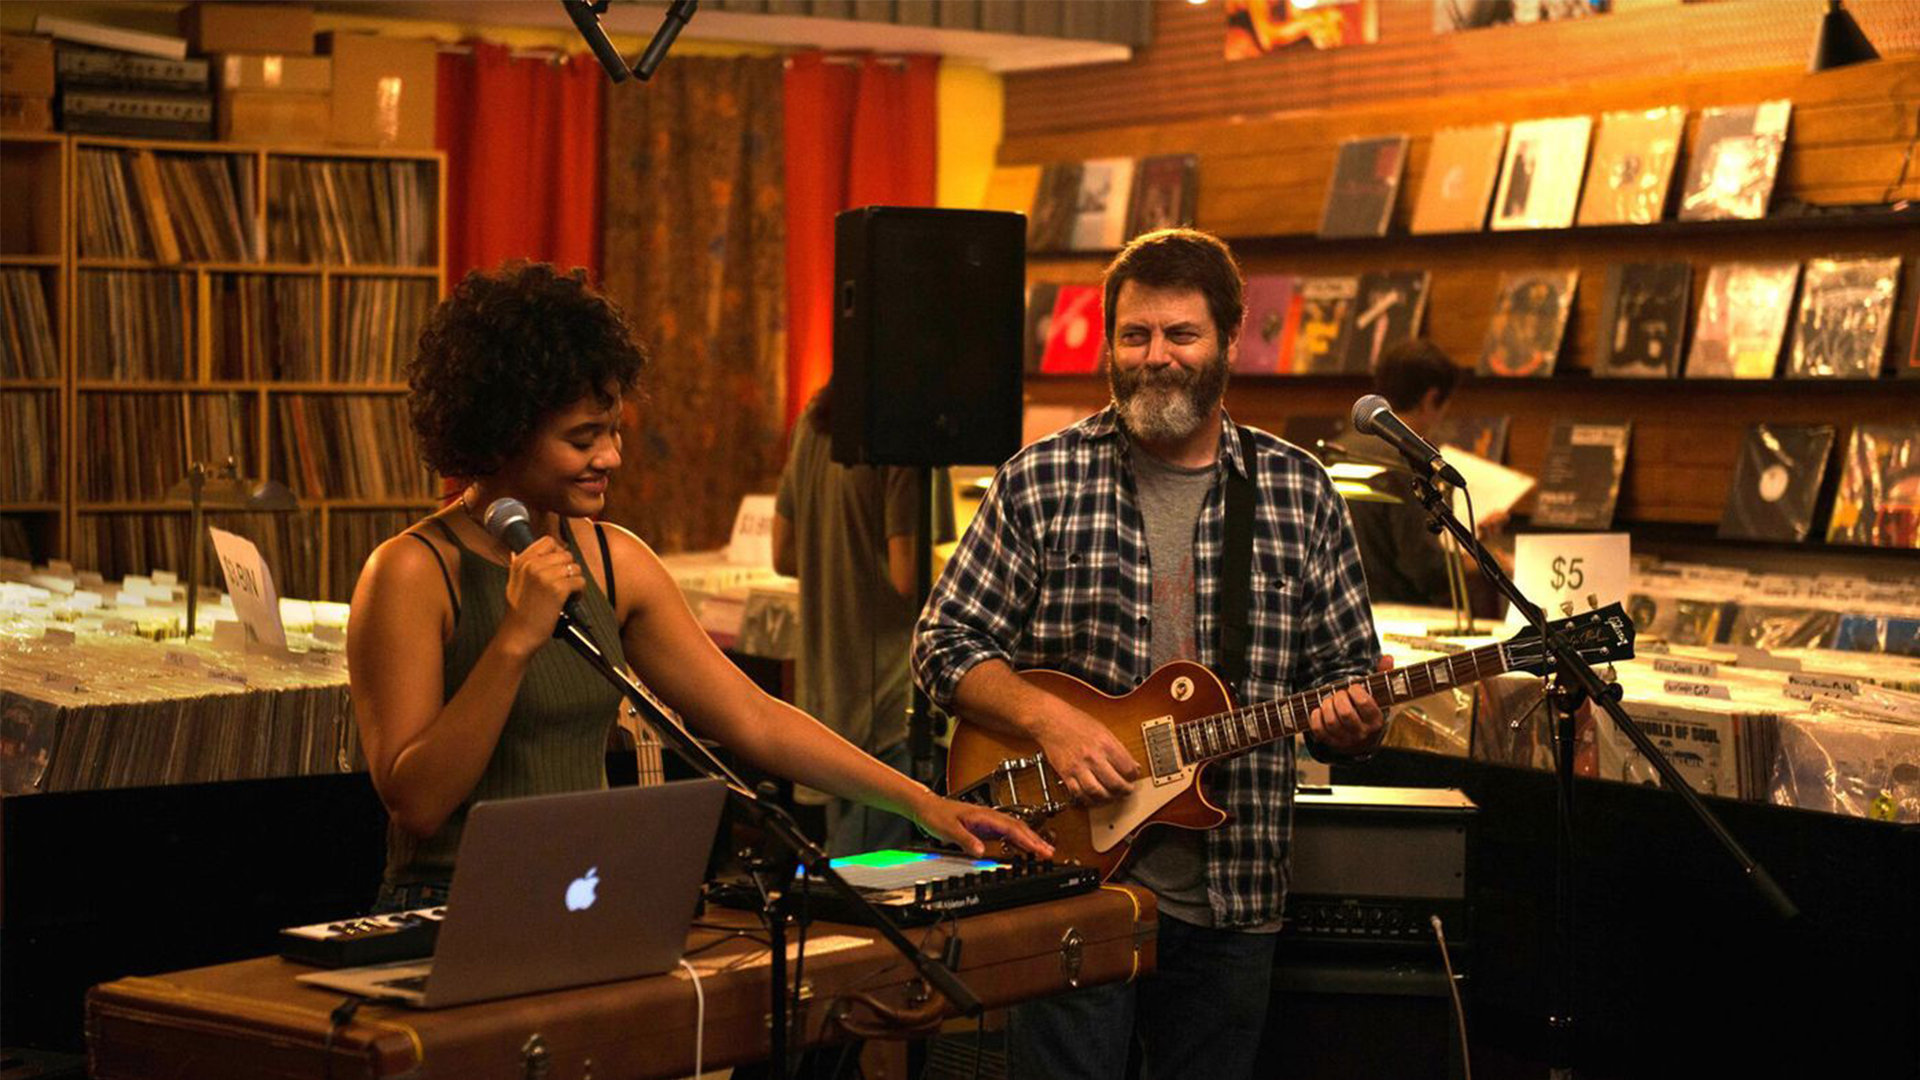 Hearts Beat Loud – Grandir